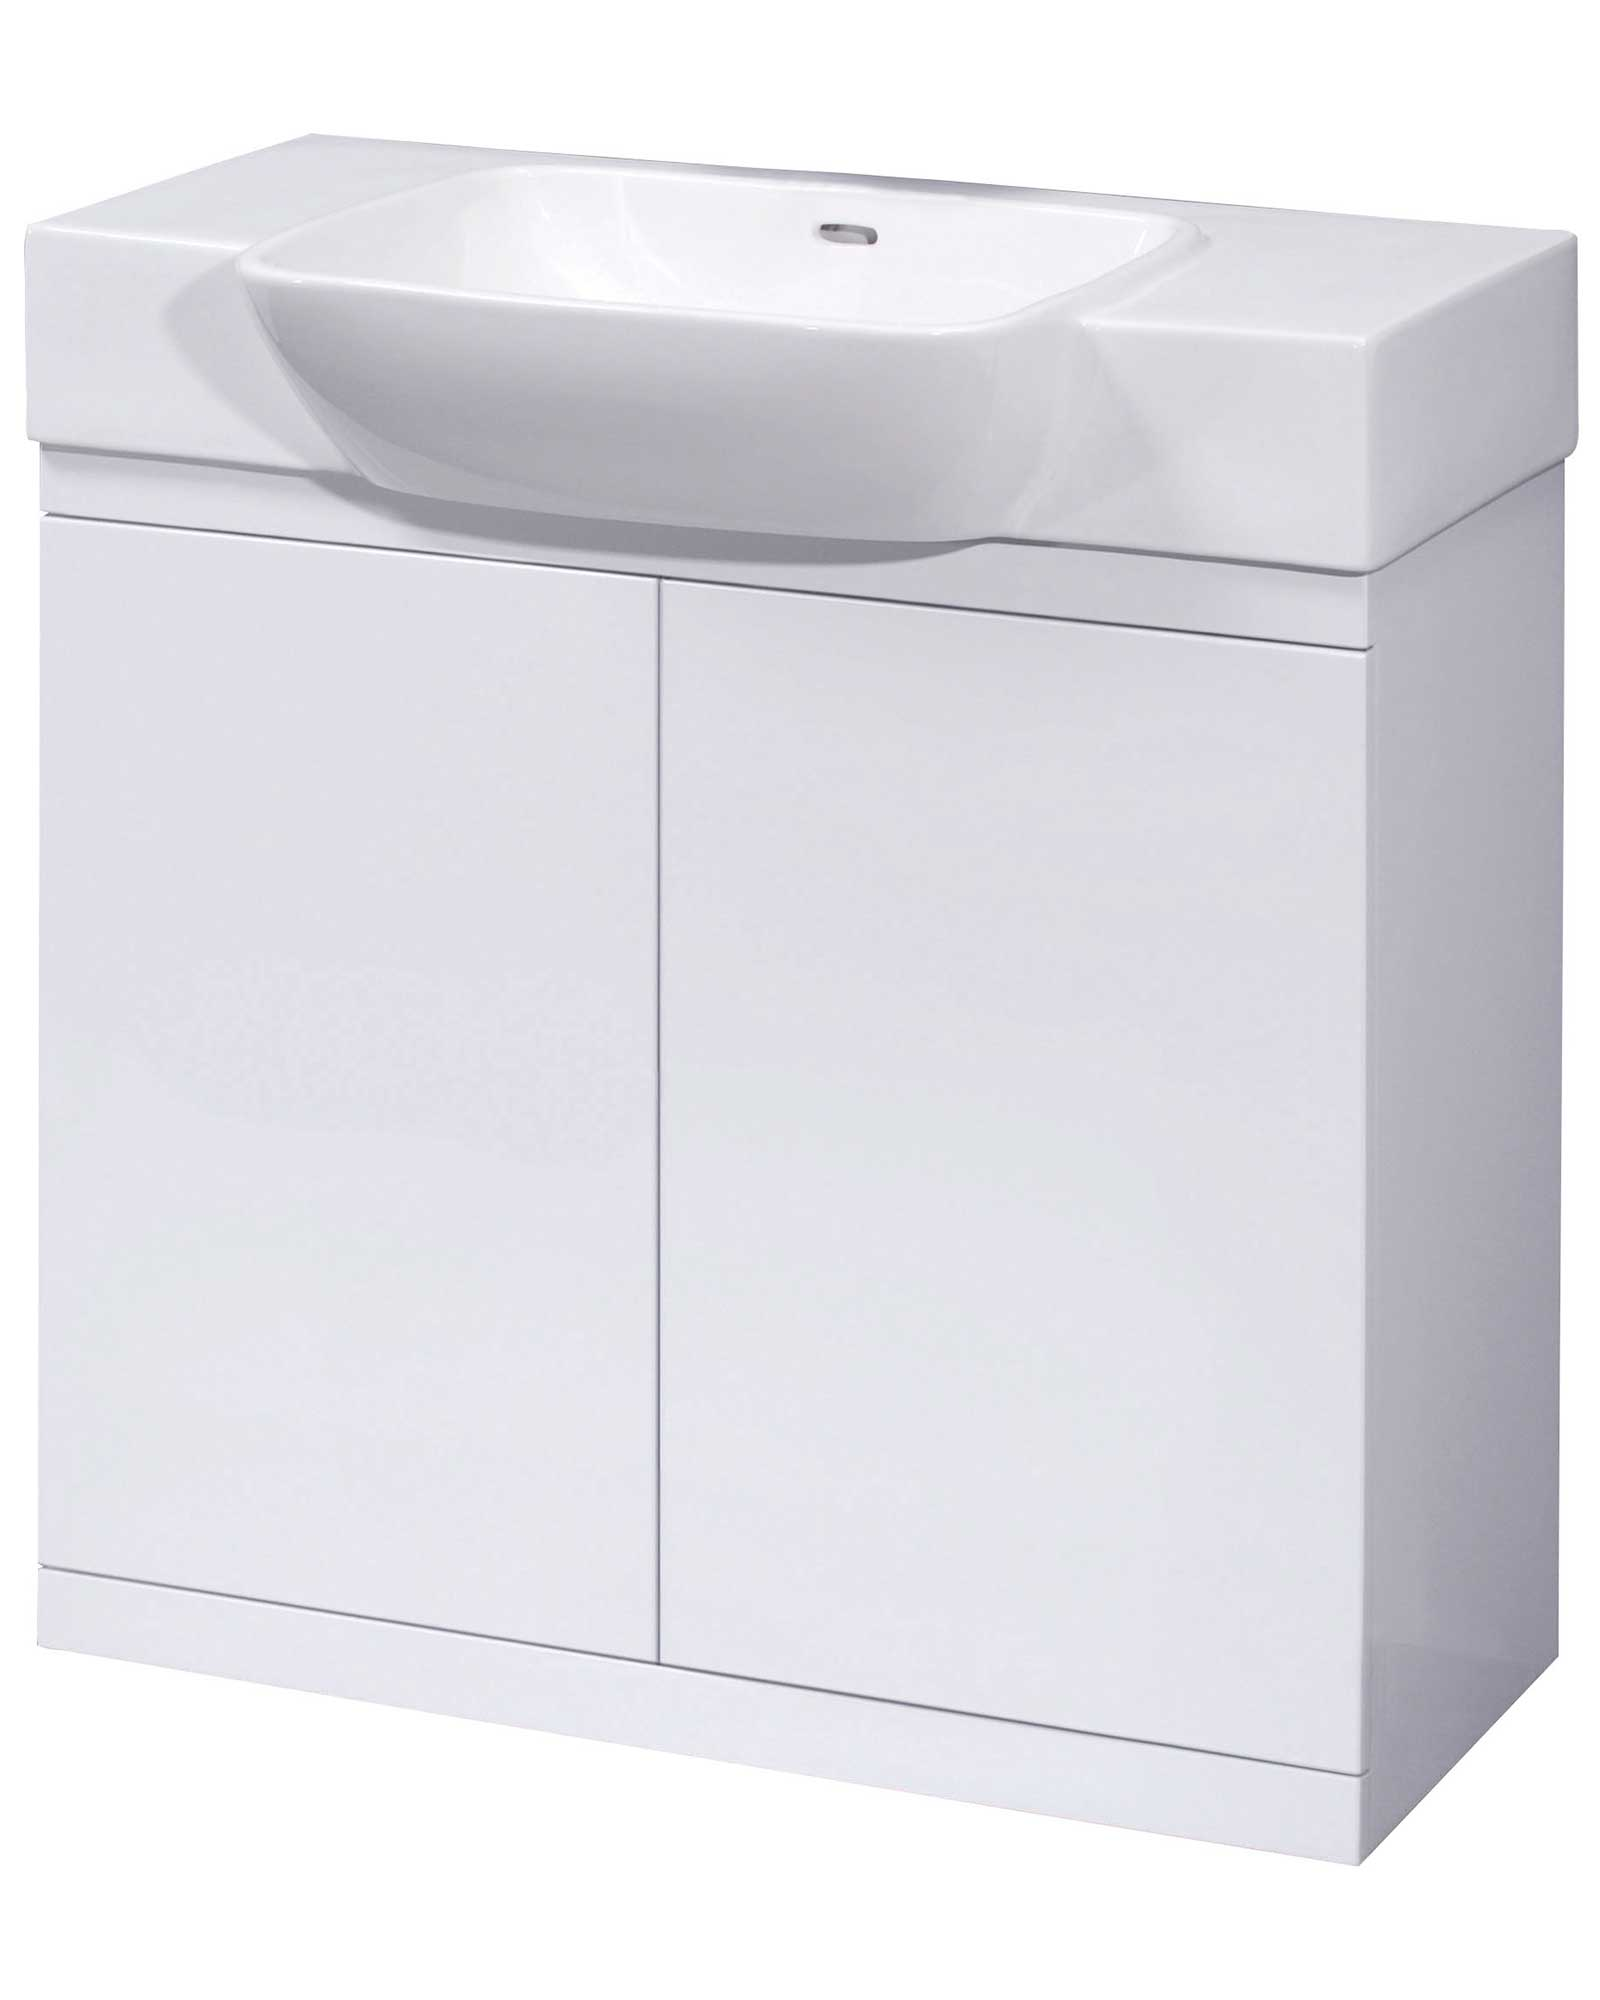 Lauren lux white floor standing 2 door cabinet and basin 800mm for Bathroom cabinets 800mm high